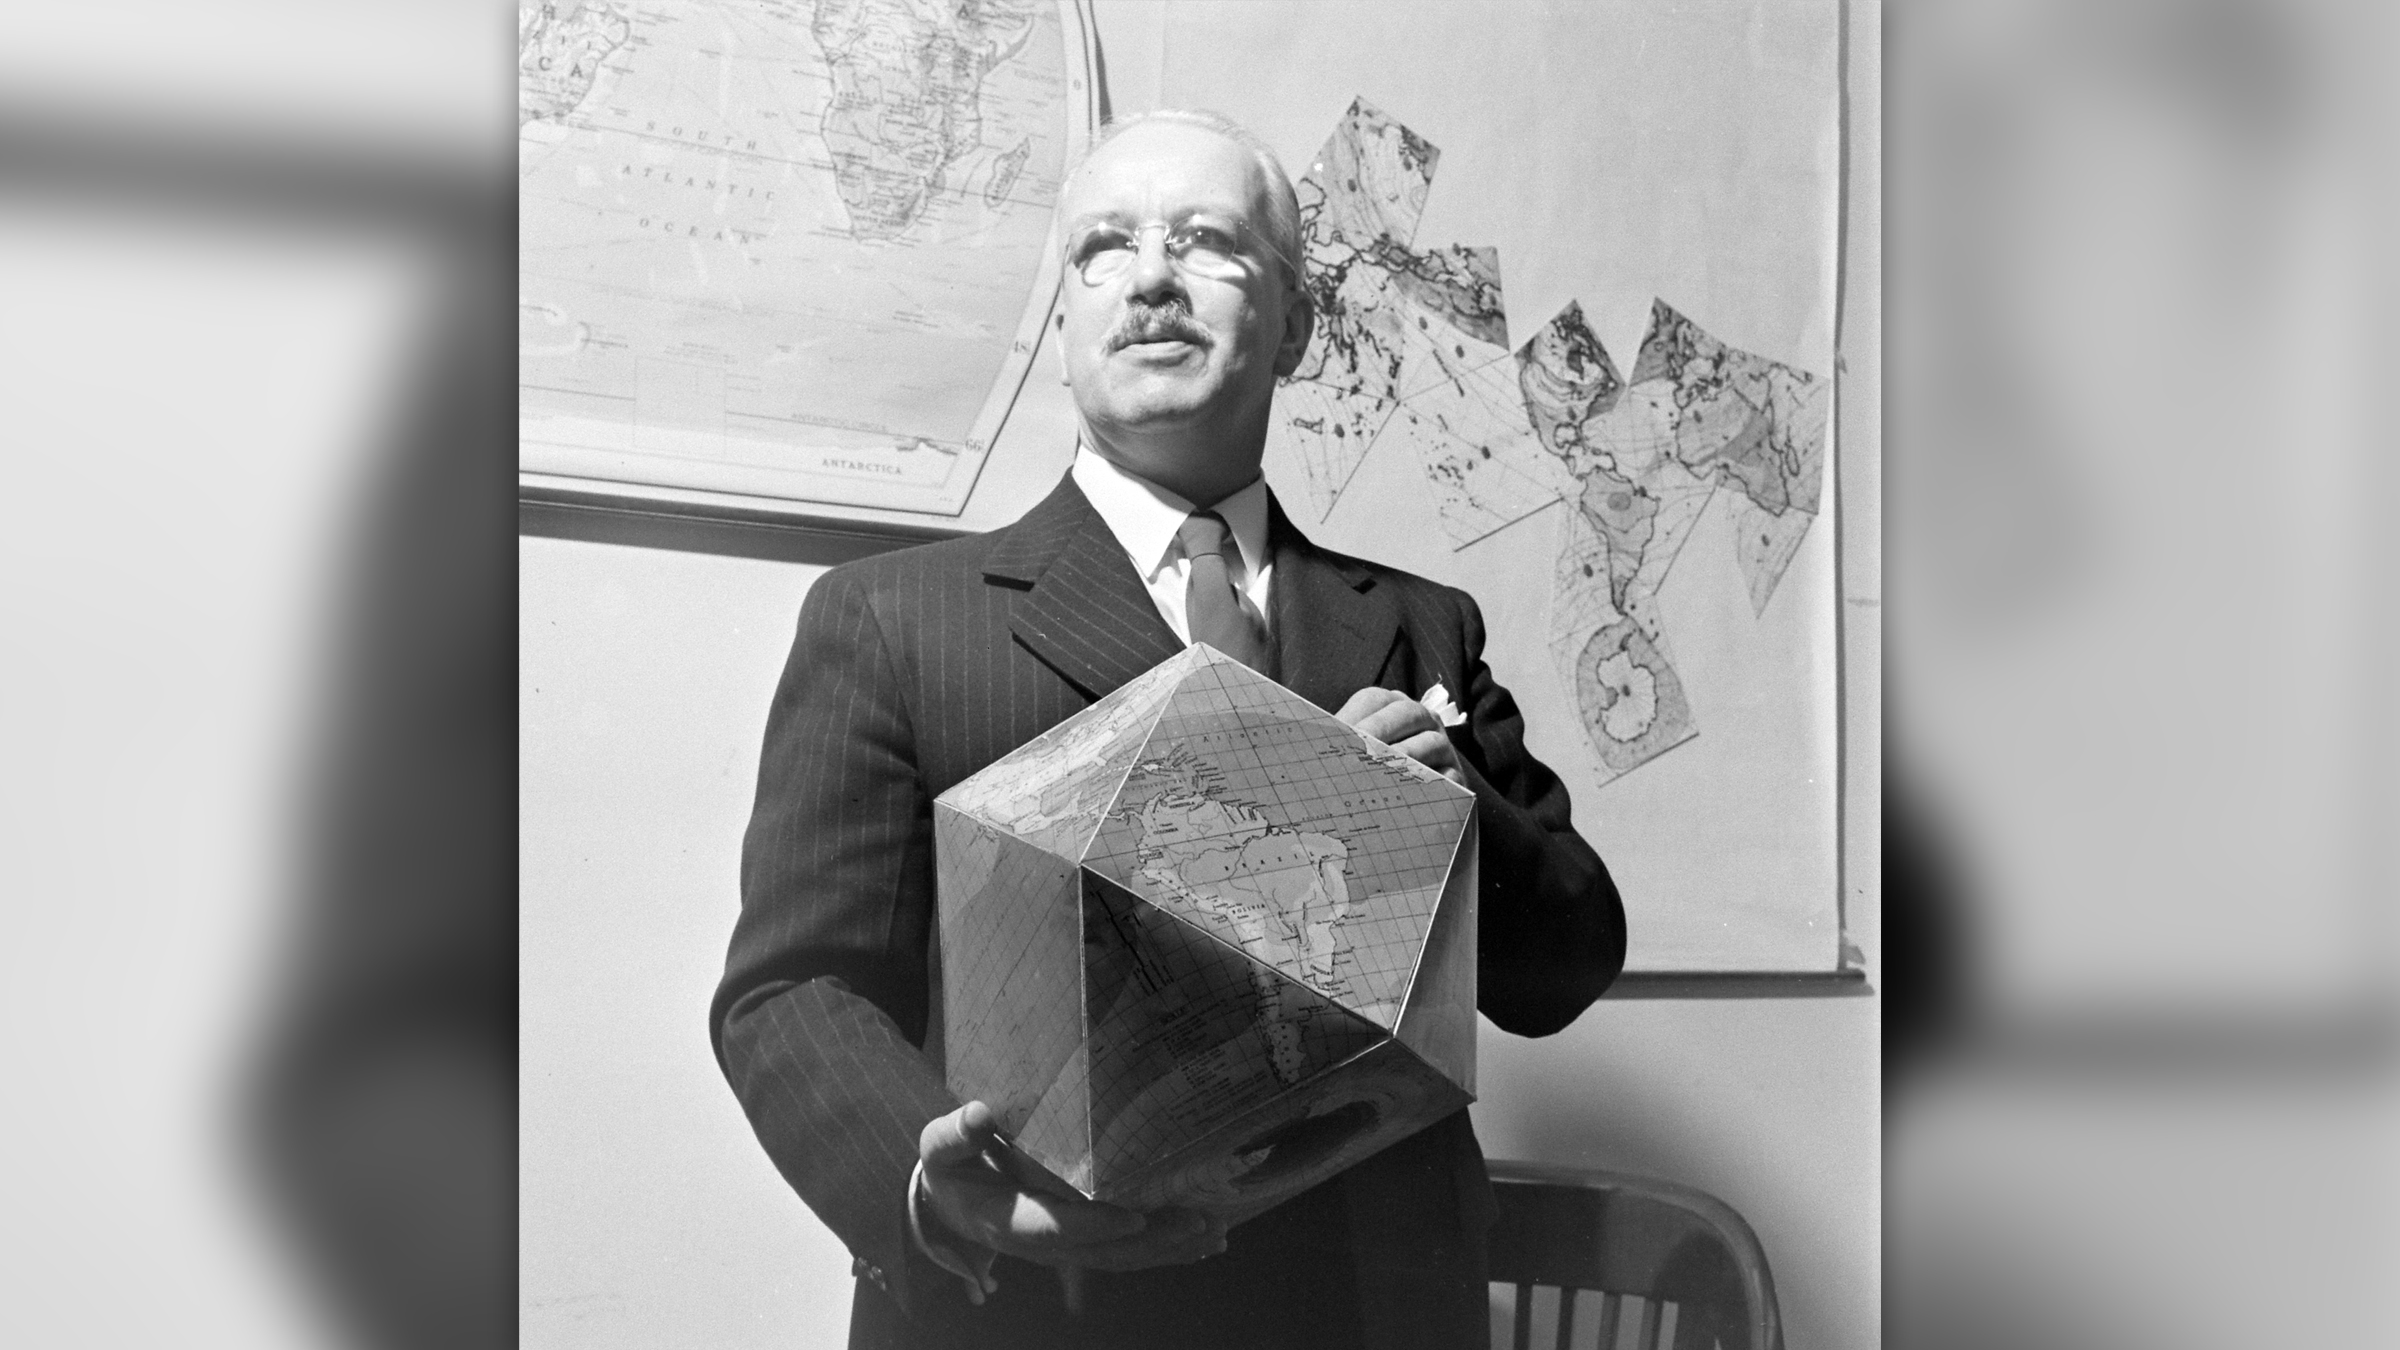 Richard Buckminster Fuller holds his assembled polyhedral globe. Note the flat map on the wall in the background.